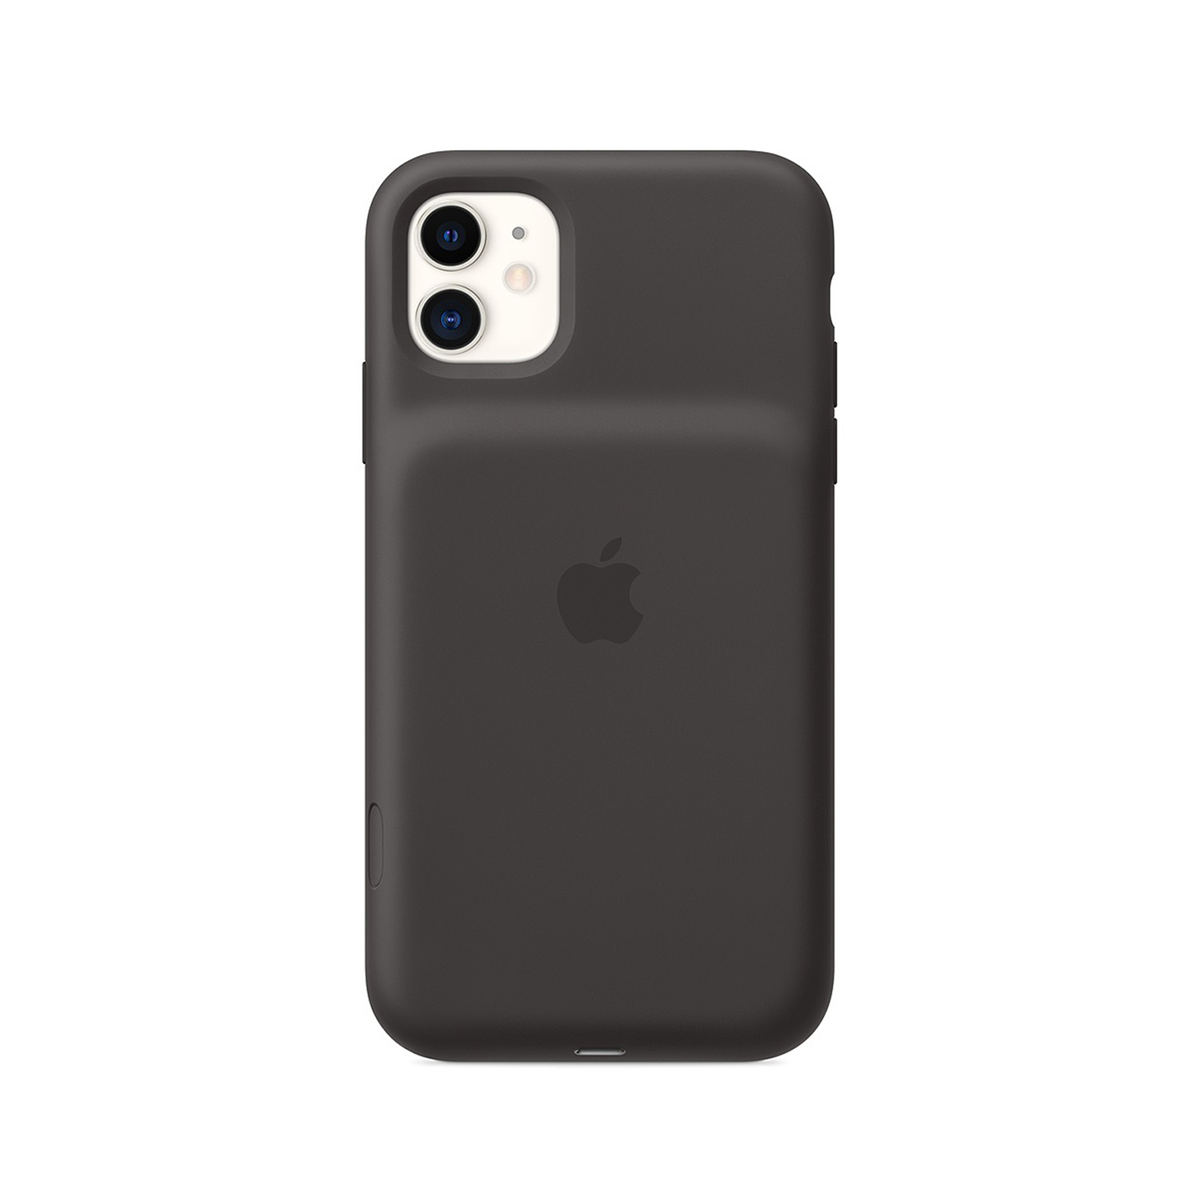 iPhone 11 Smart Battery Case - Black